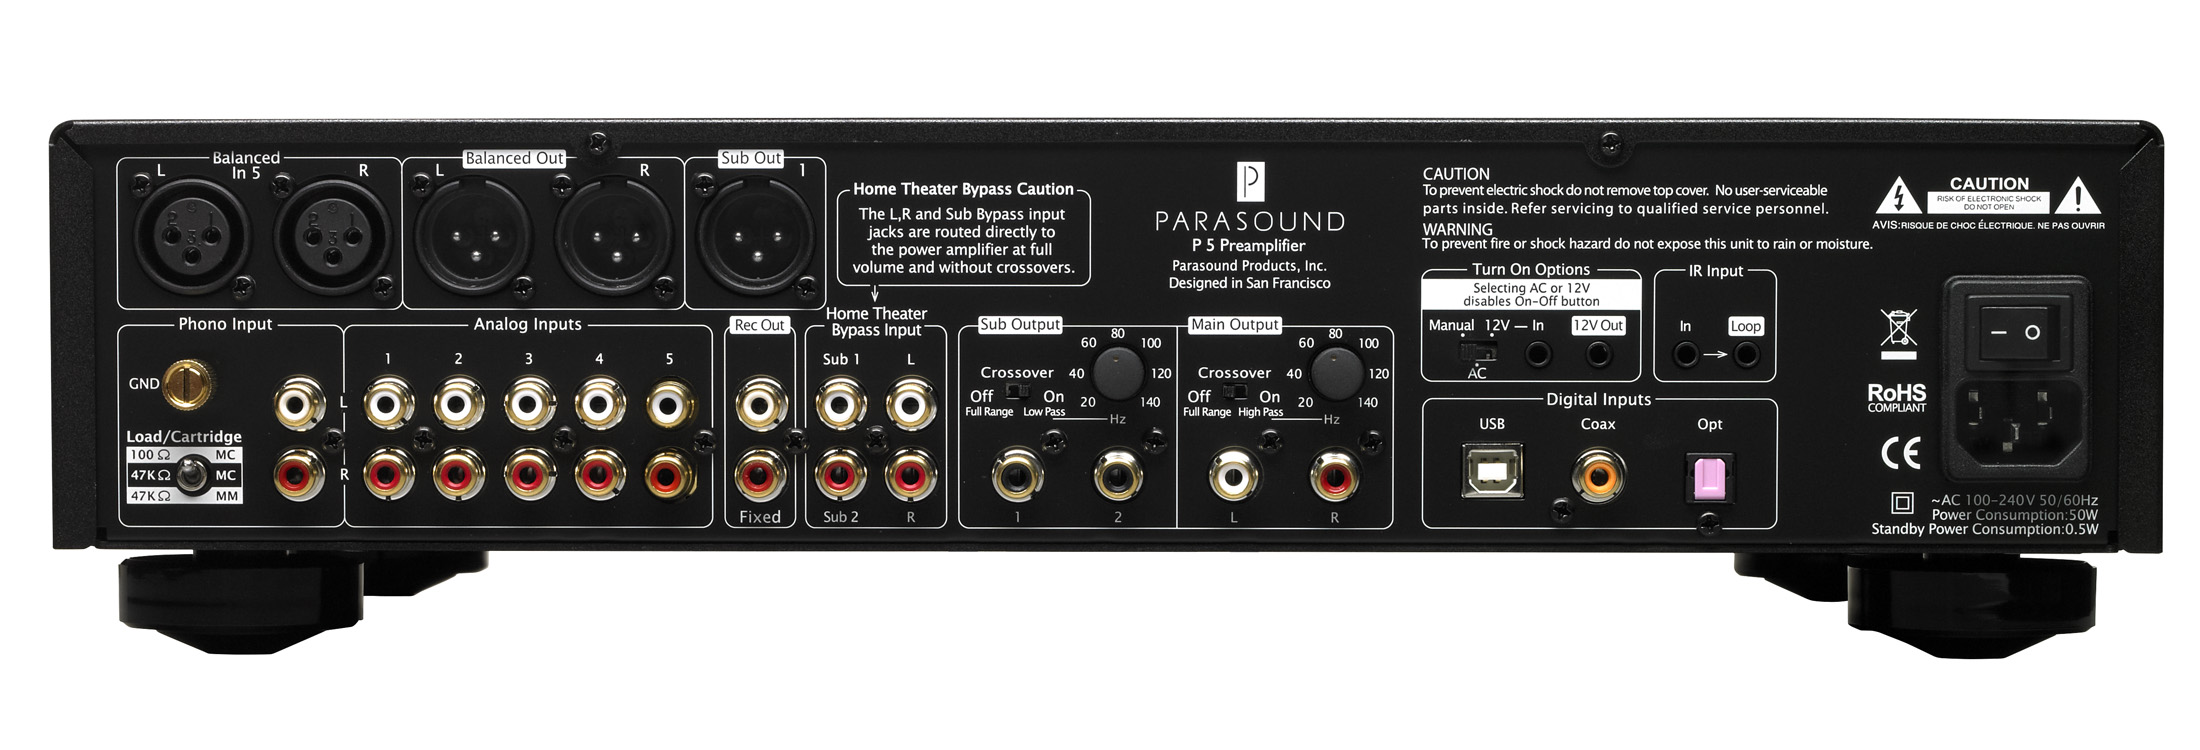 Product Lines Gt Halo Gt P 5 2 1 Channel Stereo Preamplifier